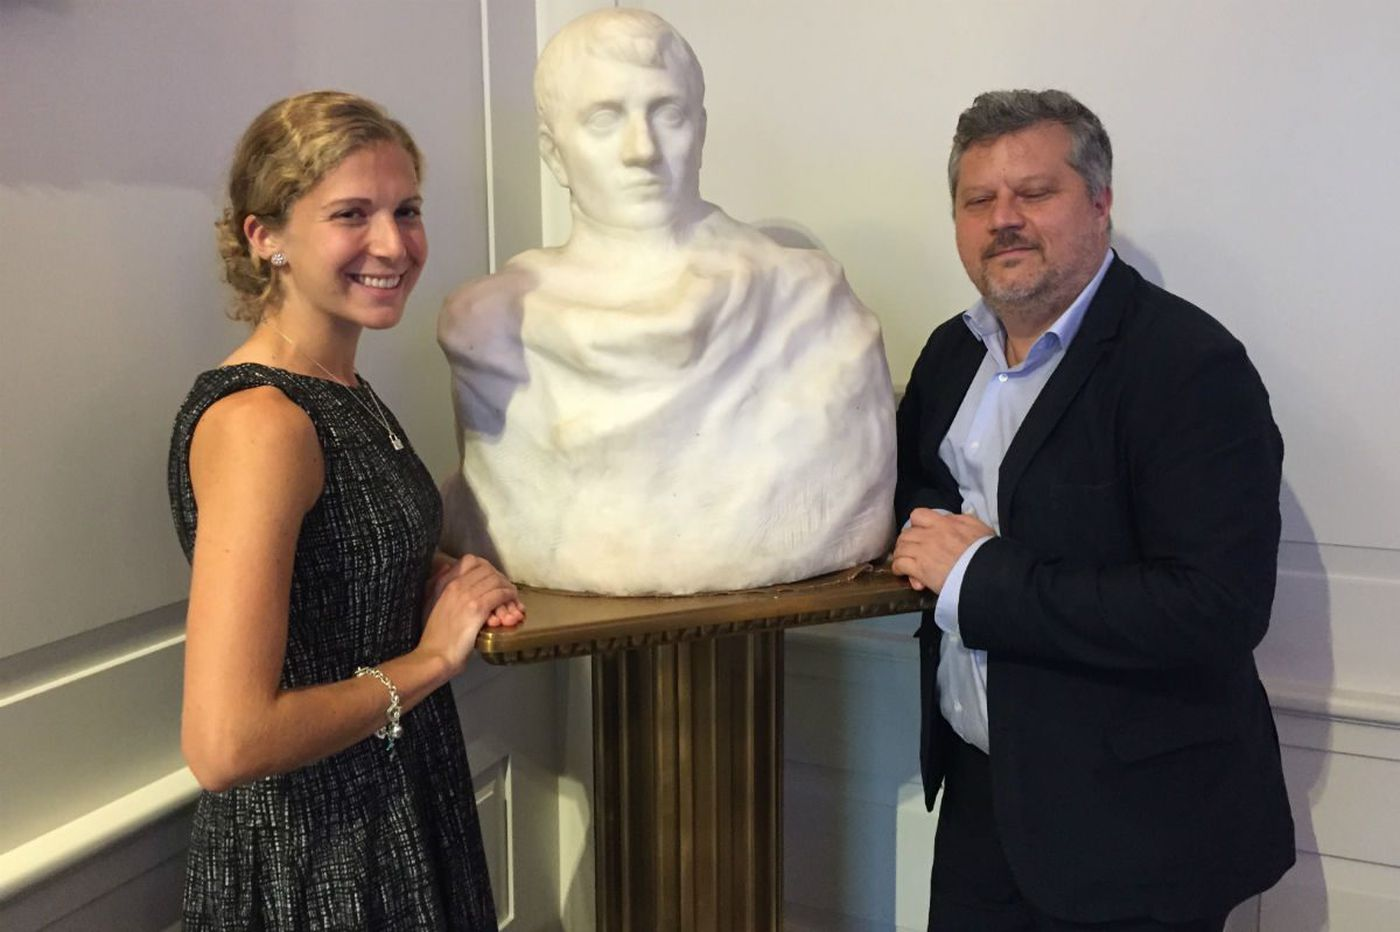 Lost in plain sight in N.J. town hall, Rodin Napoleon coming to Philly